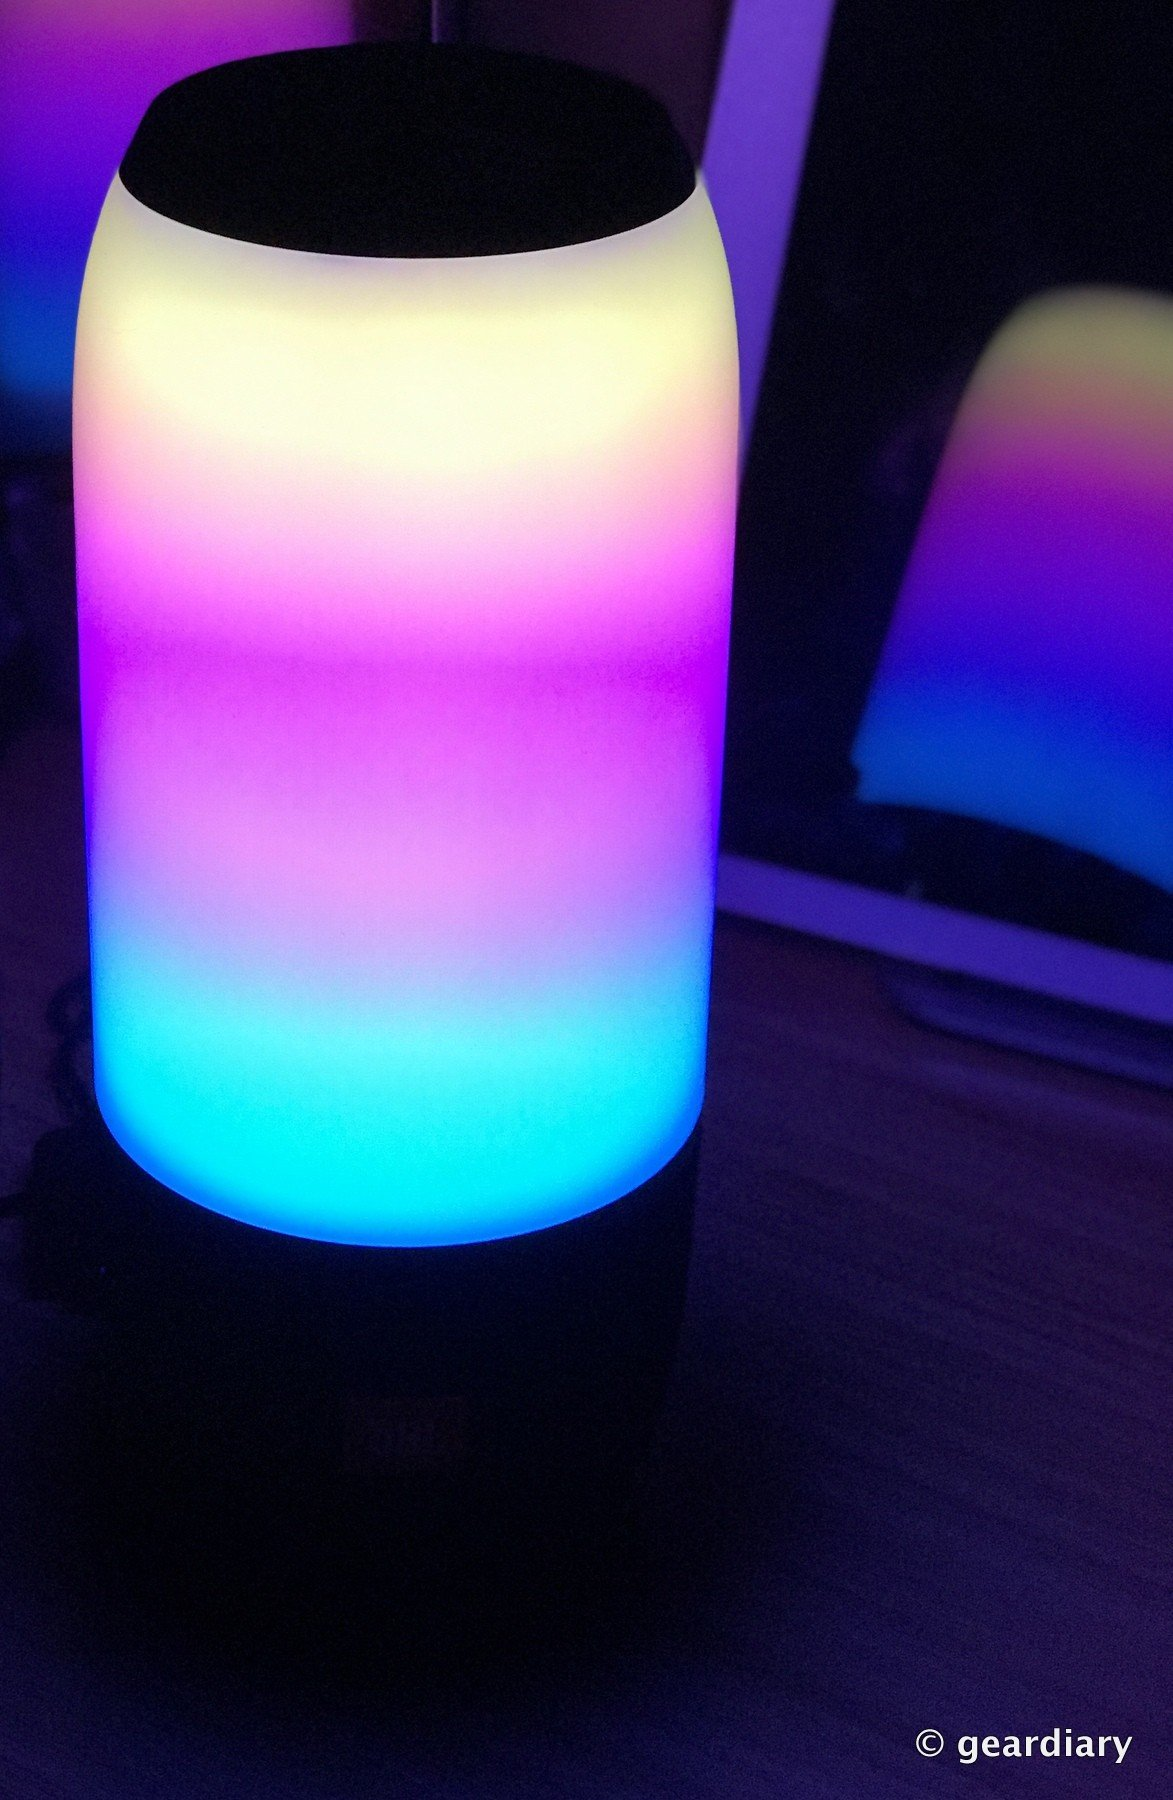 JBL Pulse 3 Portable Bluetooth Speaker: A Grown-Up Lava Lamp with Skills